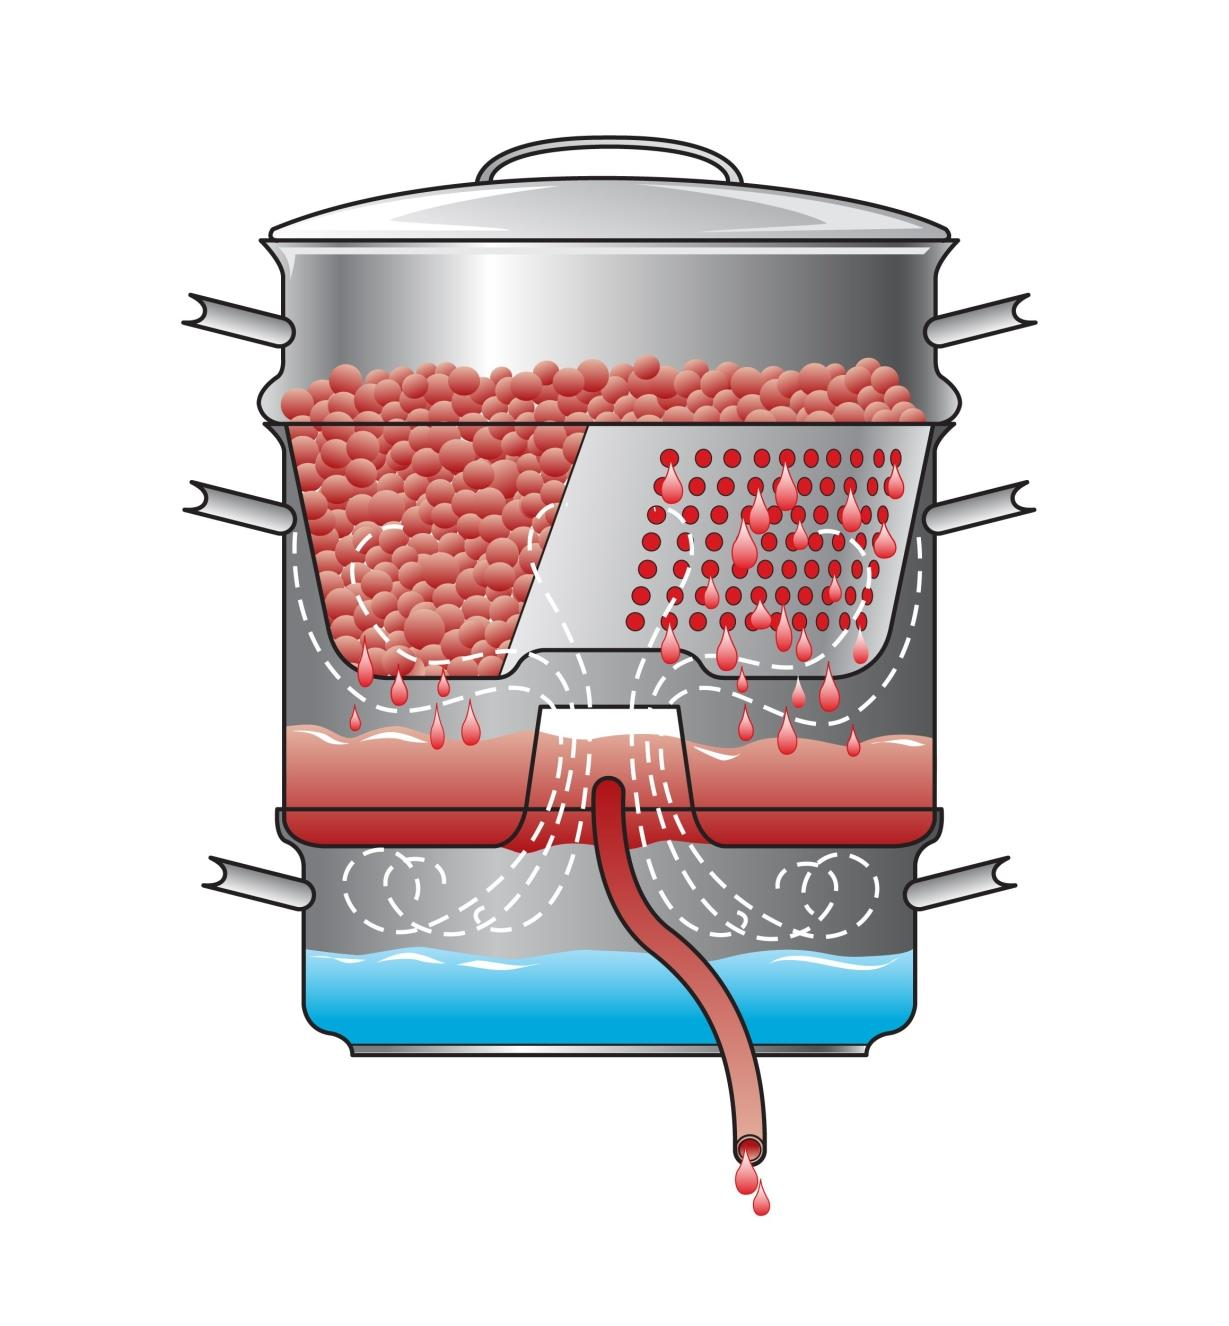 Illustration showing the juicing process inside the juicer